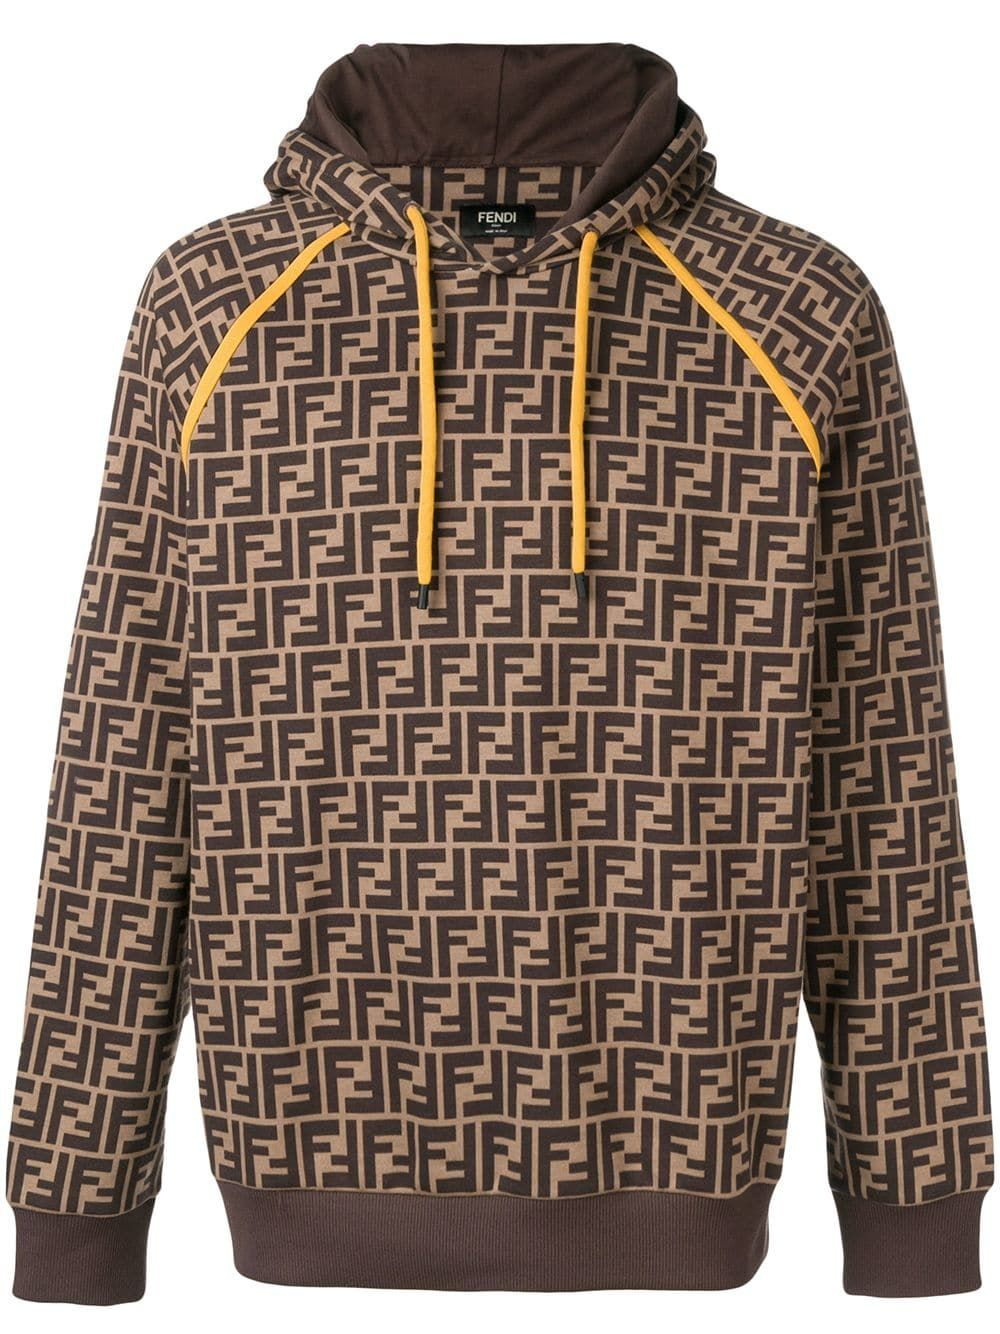 3490240758be FENDI FENDI PRINTED FF LOGO HOODIE - BROWN.  fendi  cloth